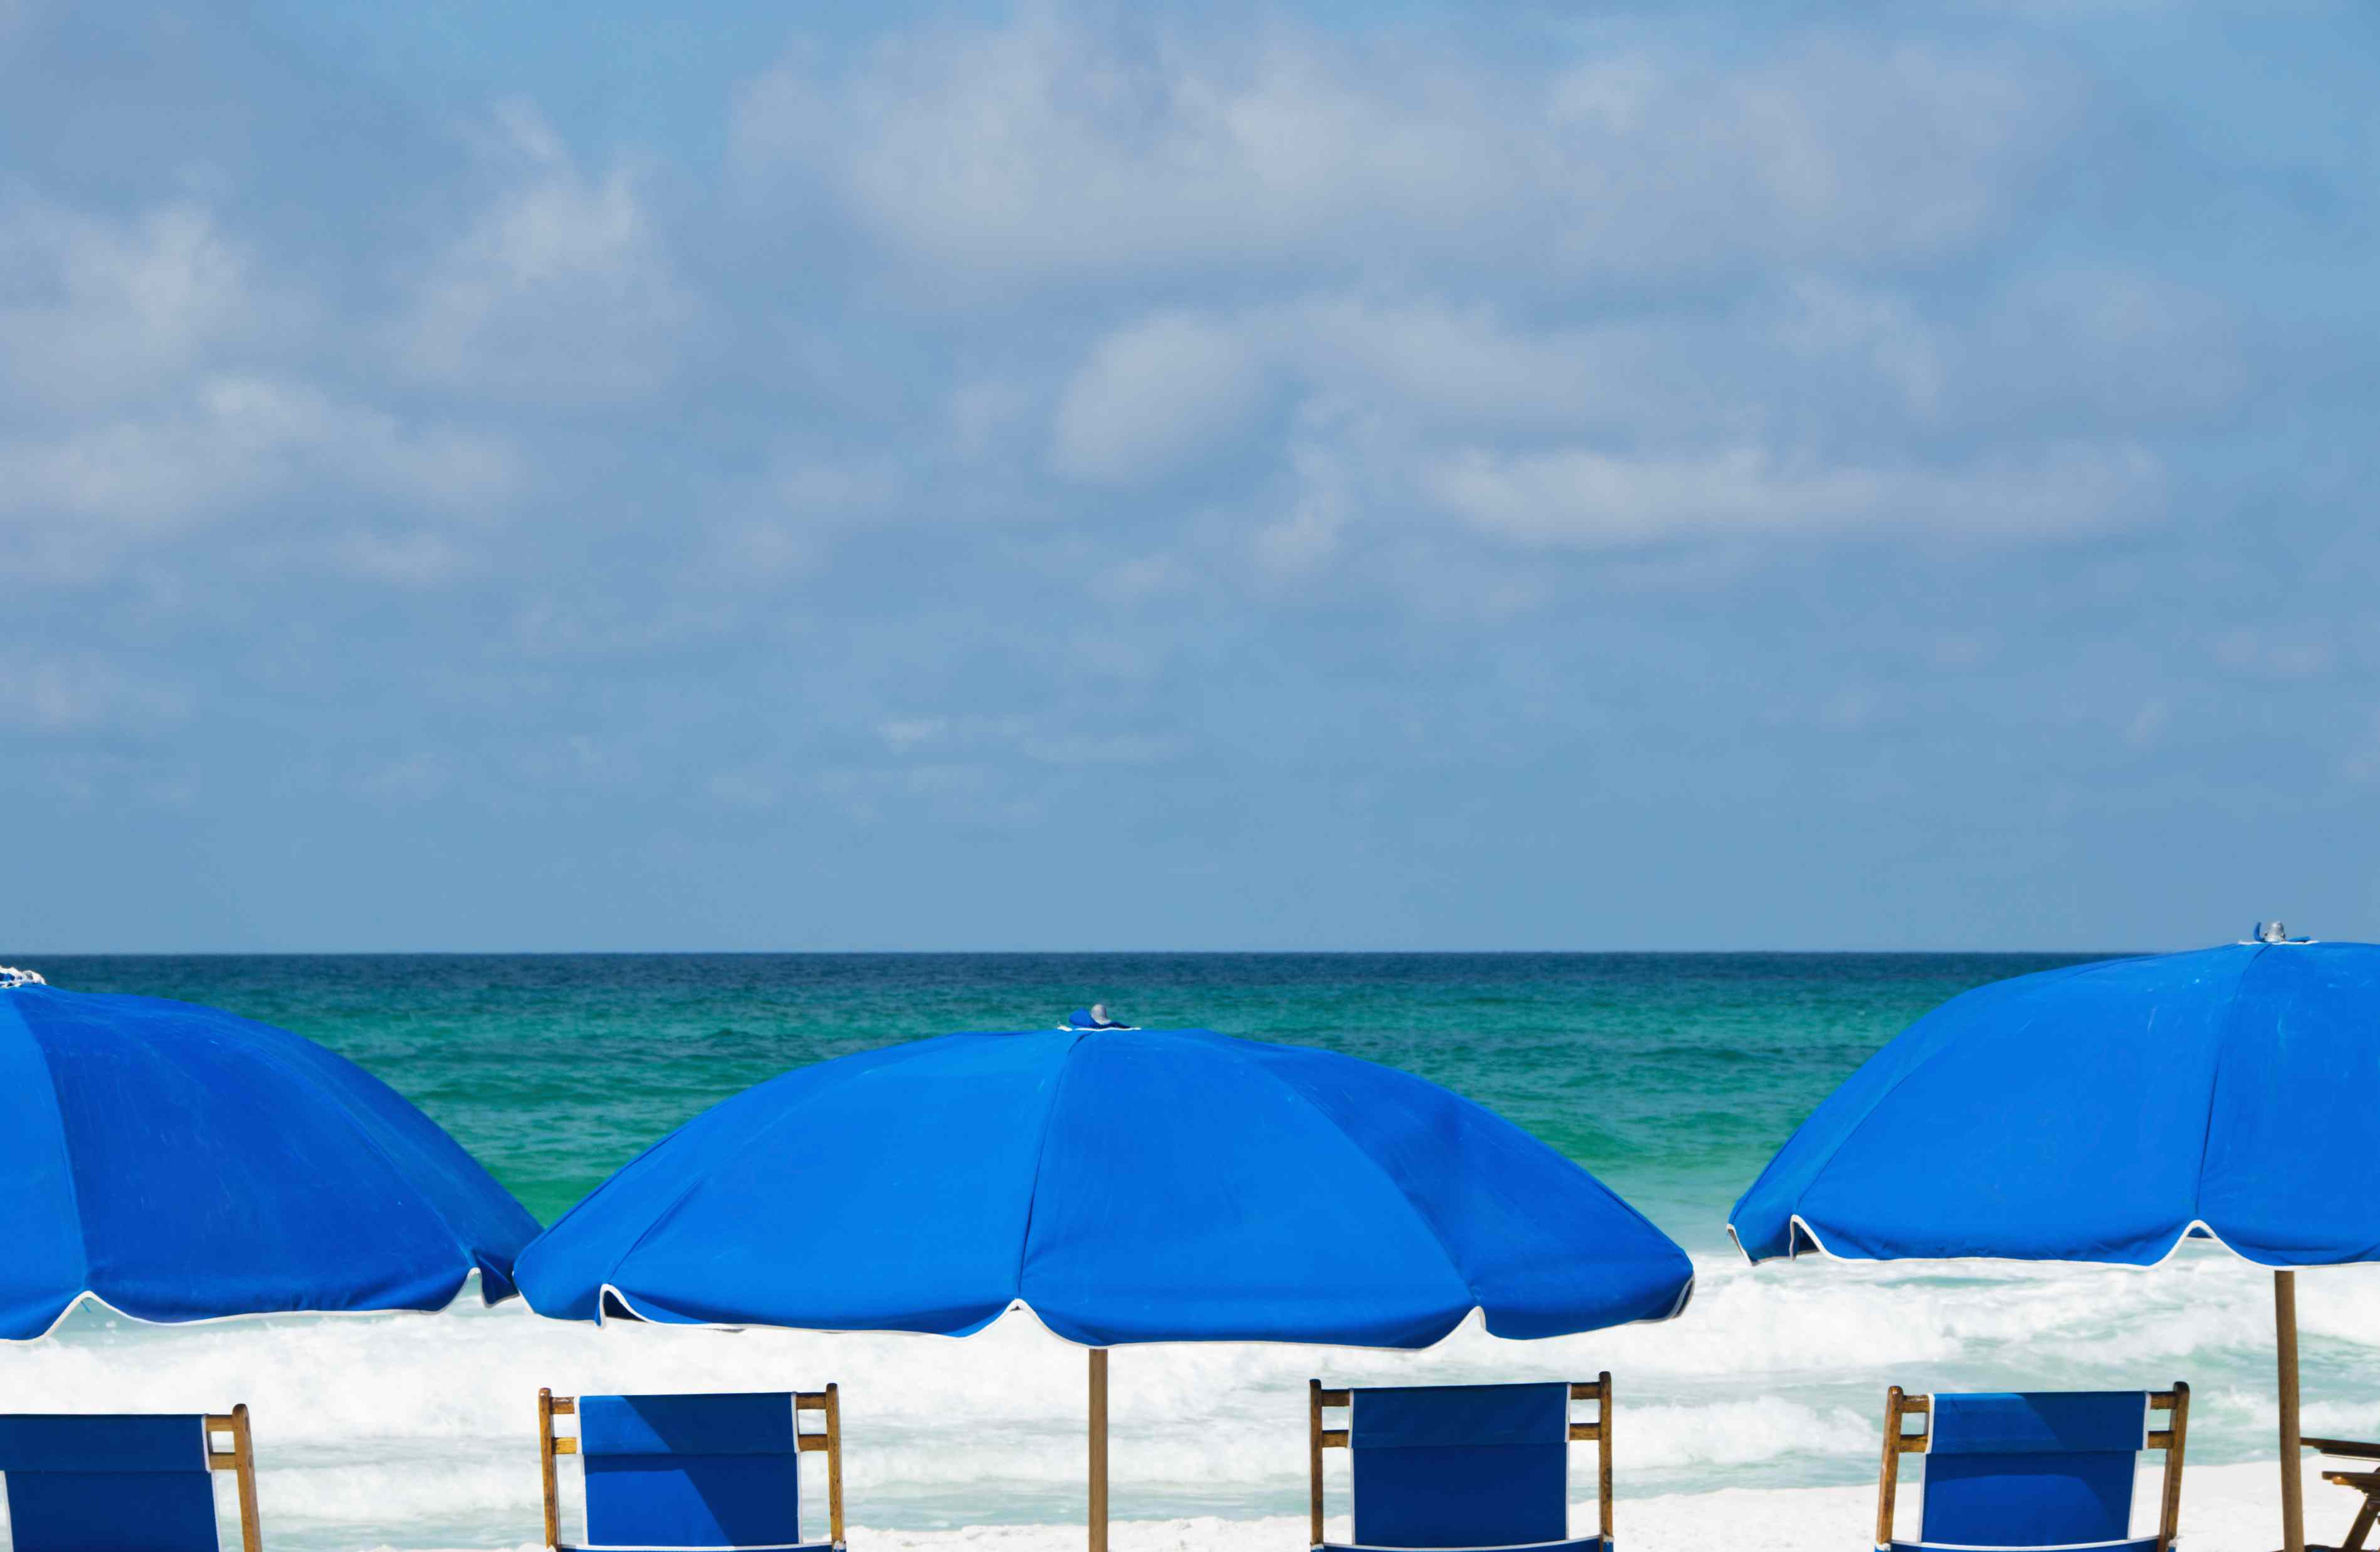 Row of the Tops of Blue Colored Beach Umbrellas